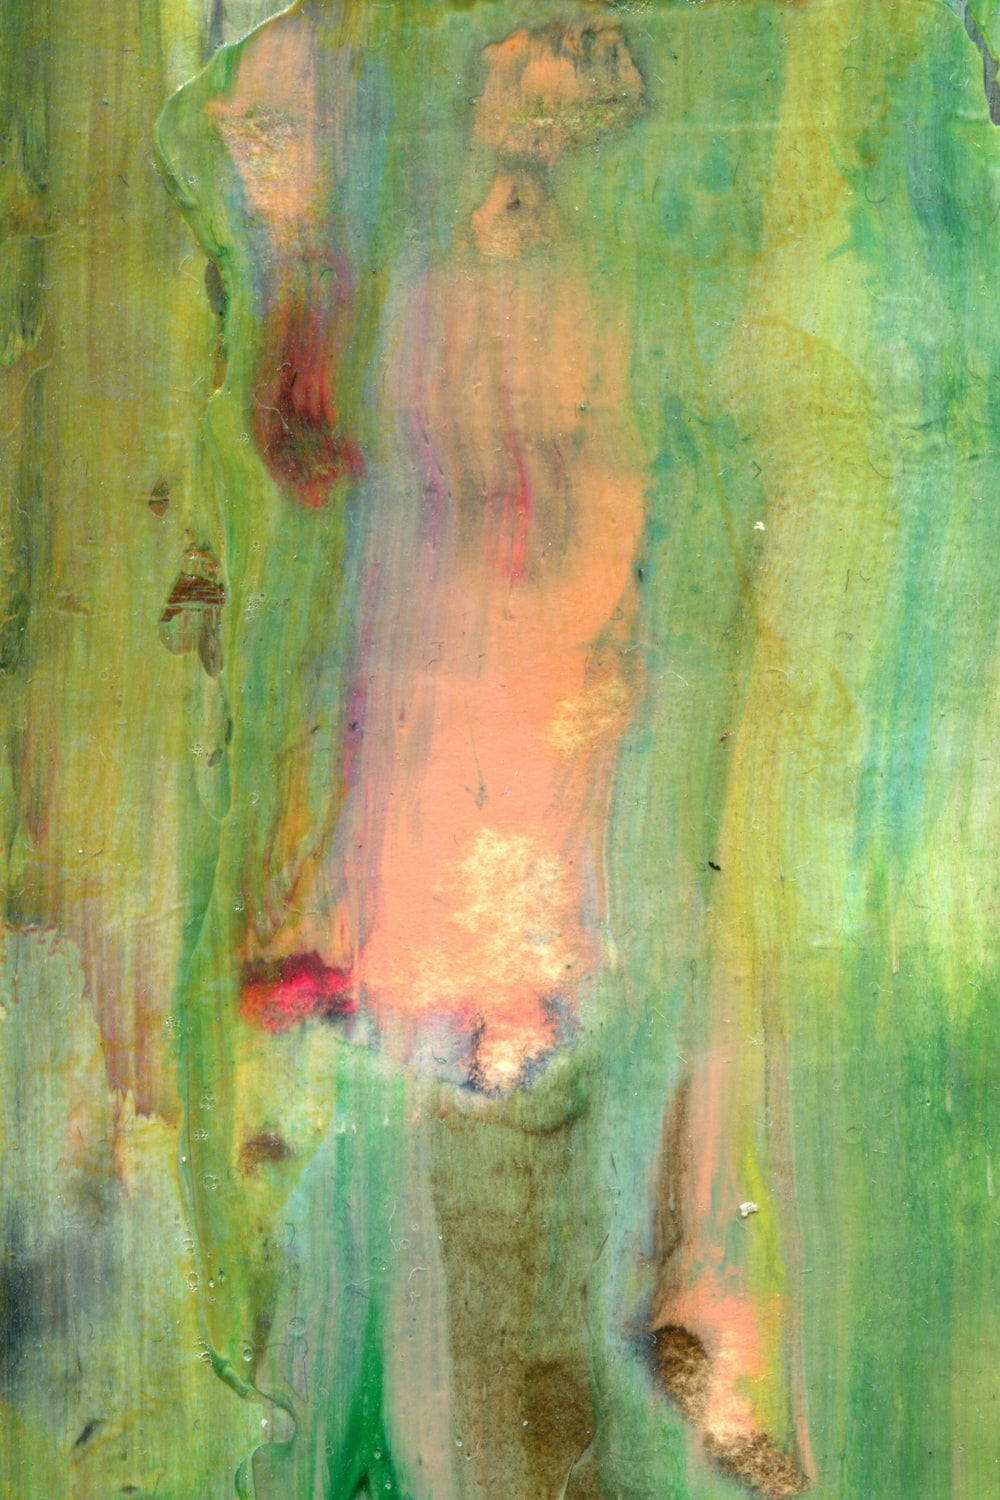 green and brown abstract painting